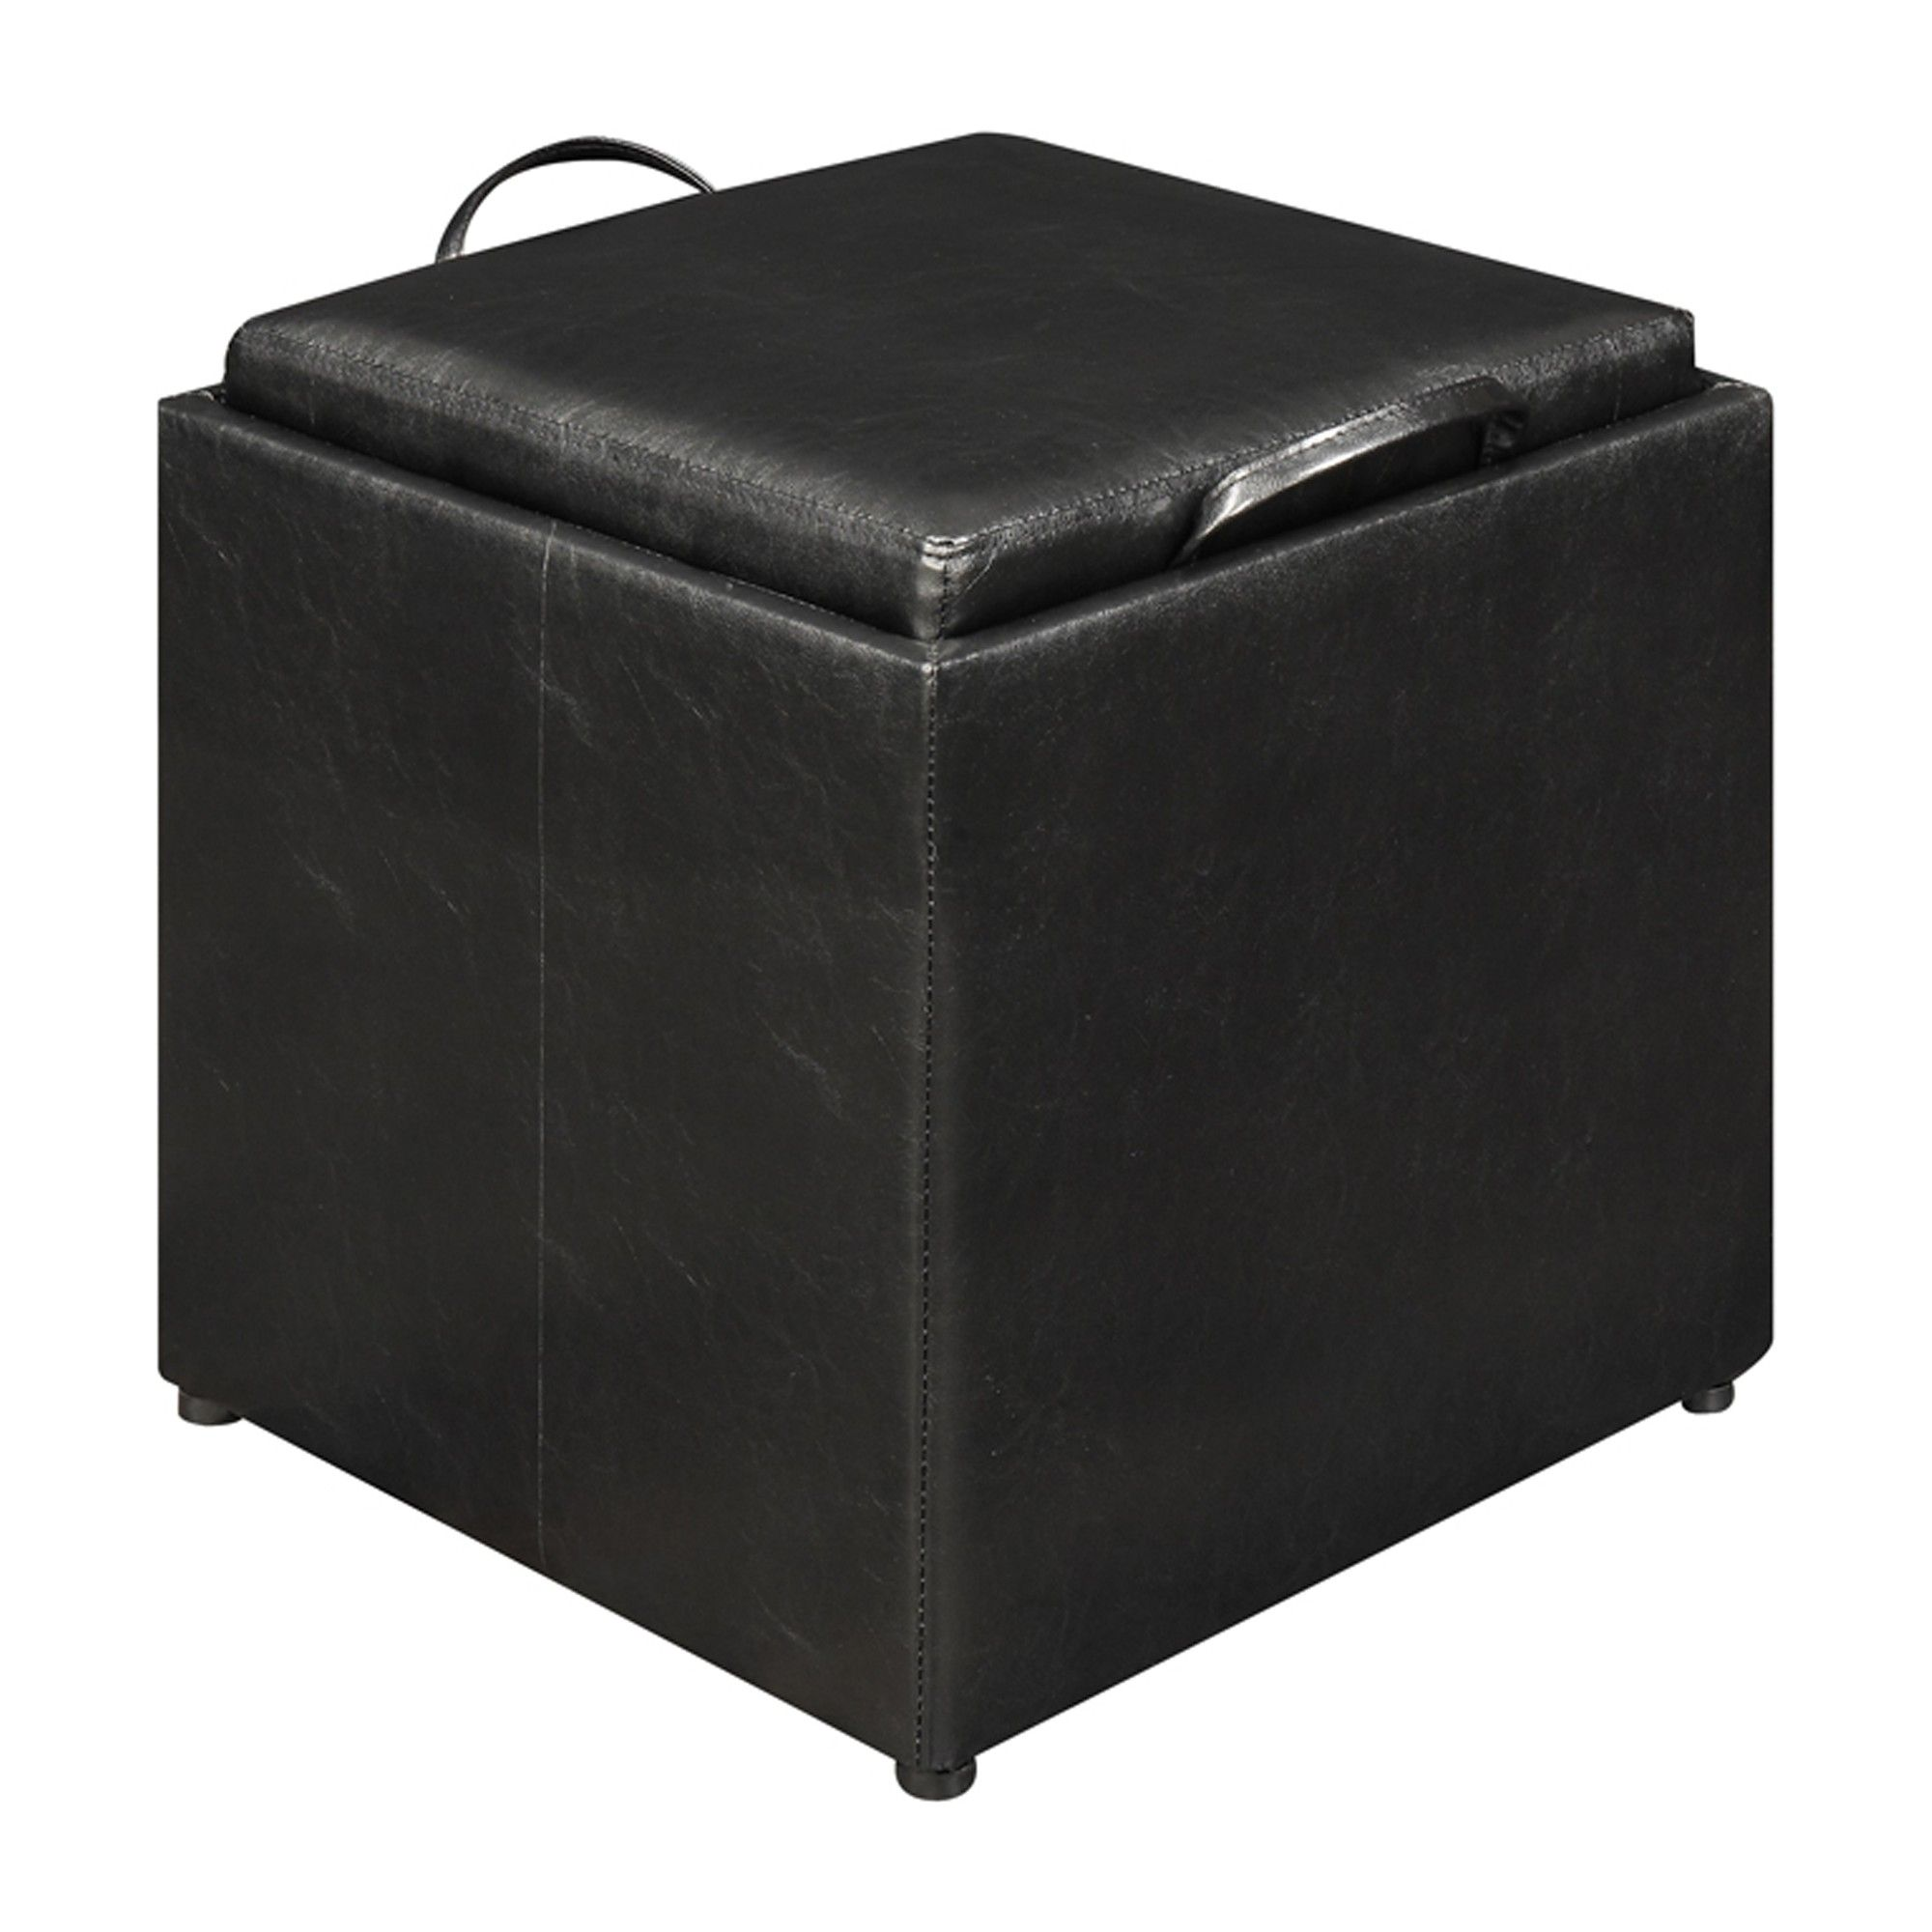 Miraculous 3 Piece Designs4Comfort Storage Ottoman Black Convenience Short Links Chair Design For Home Short Linksinfo